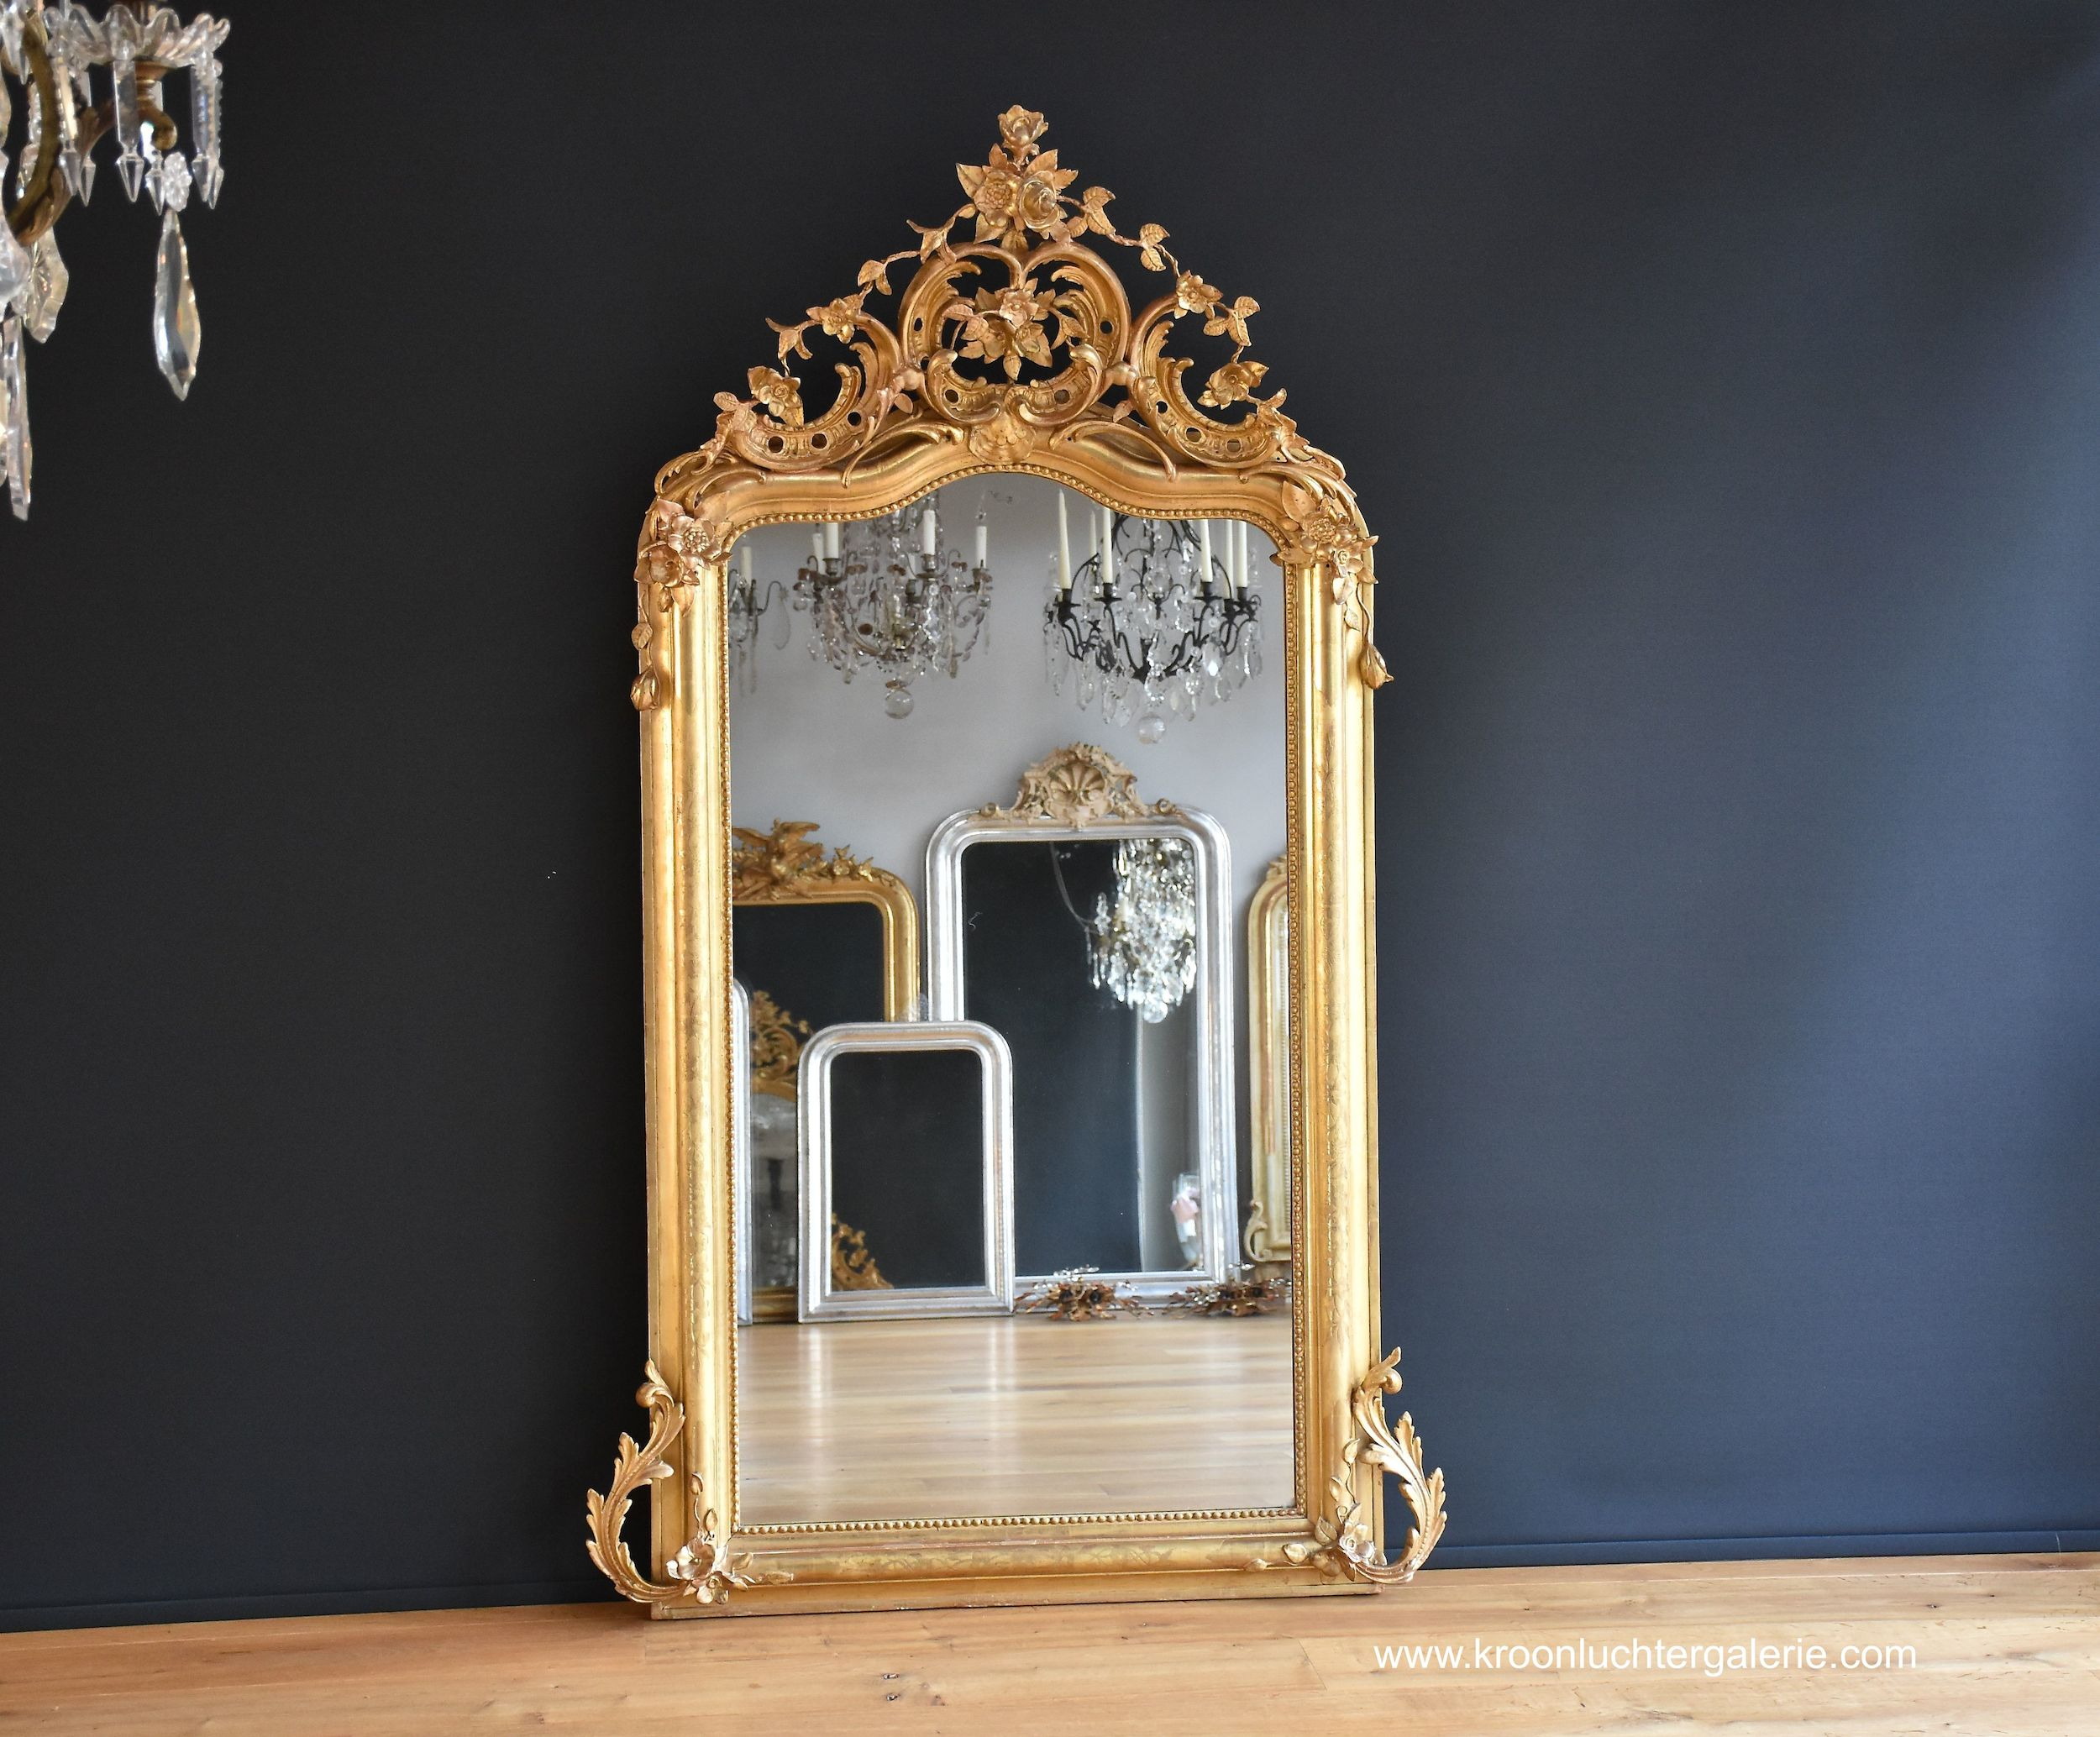 Large antique French mirror with a gorgeous crown